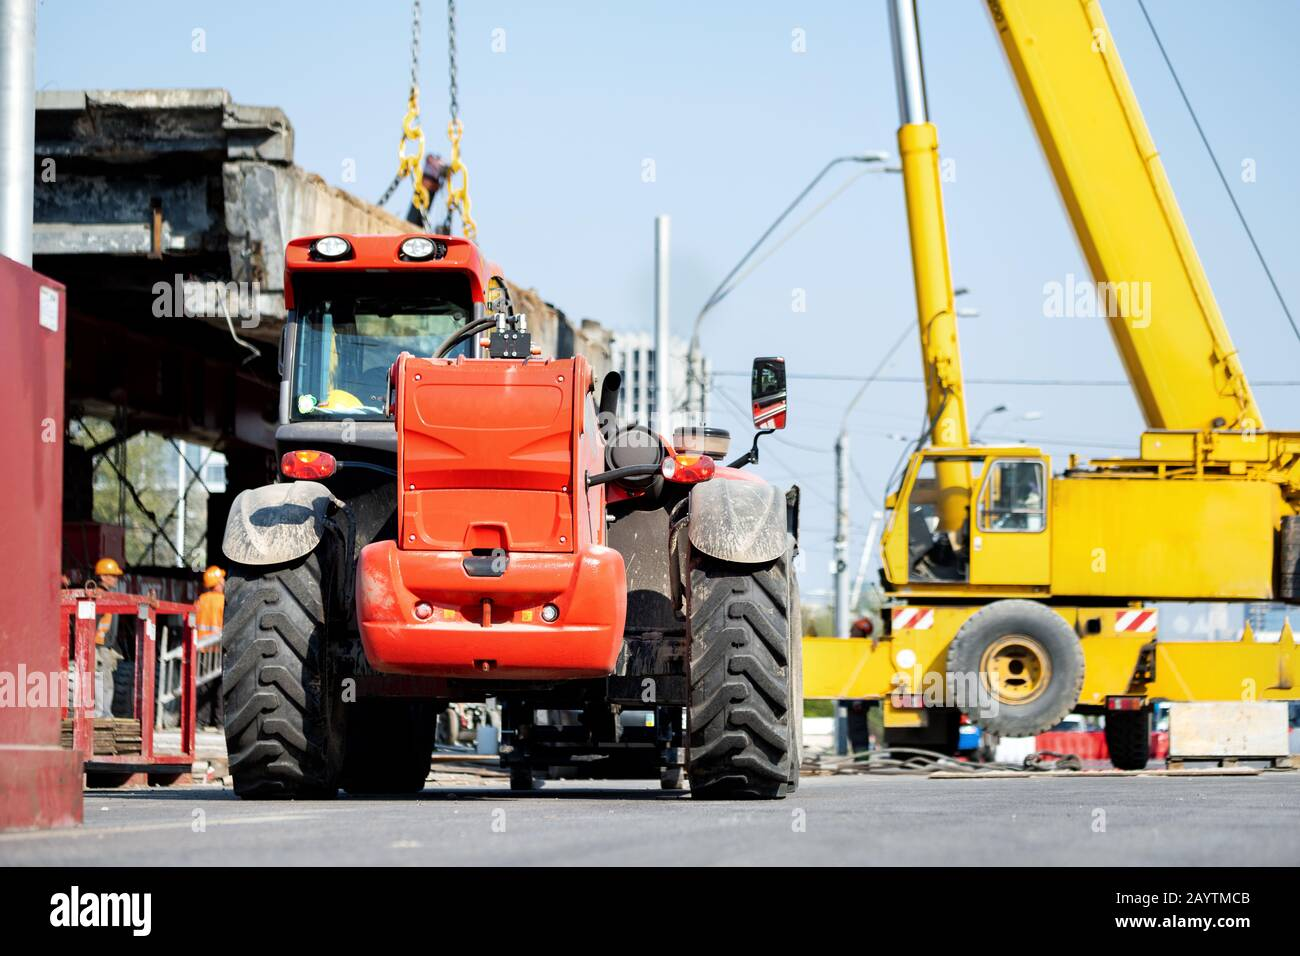 Constuction site heavy machinery industrial background. Telescopic handler vehicle and big mobile crane working at city building development Stock Photo